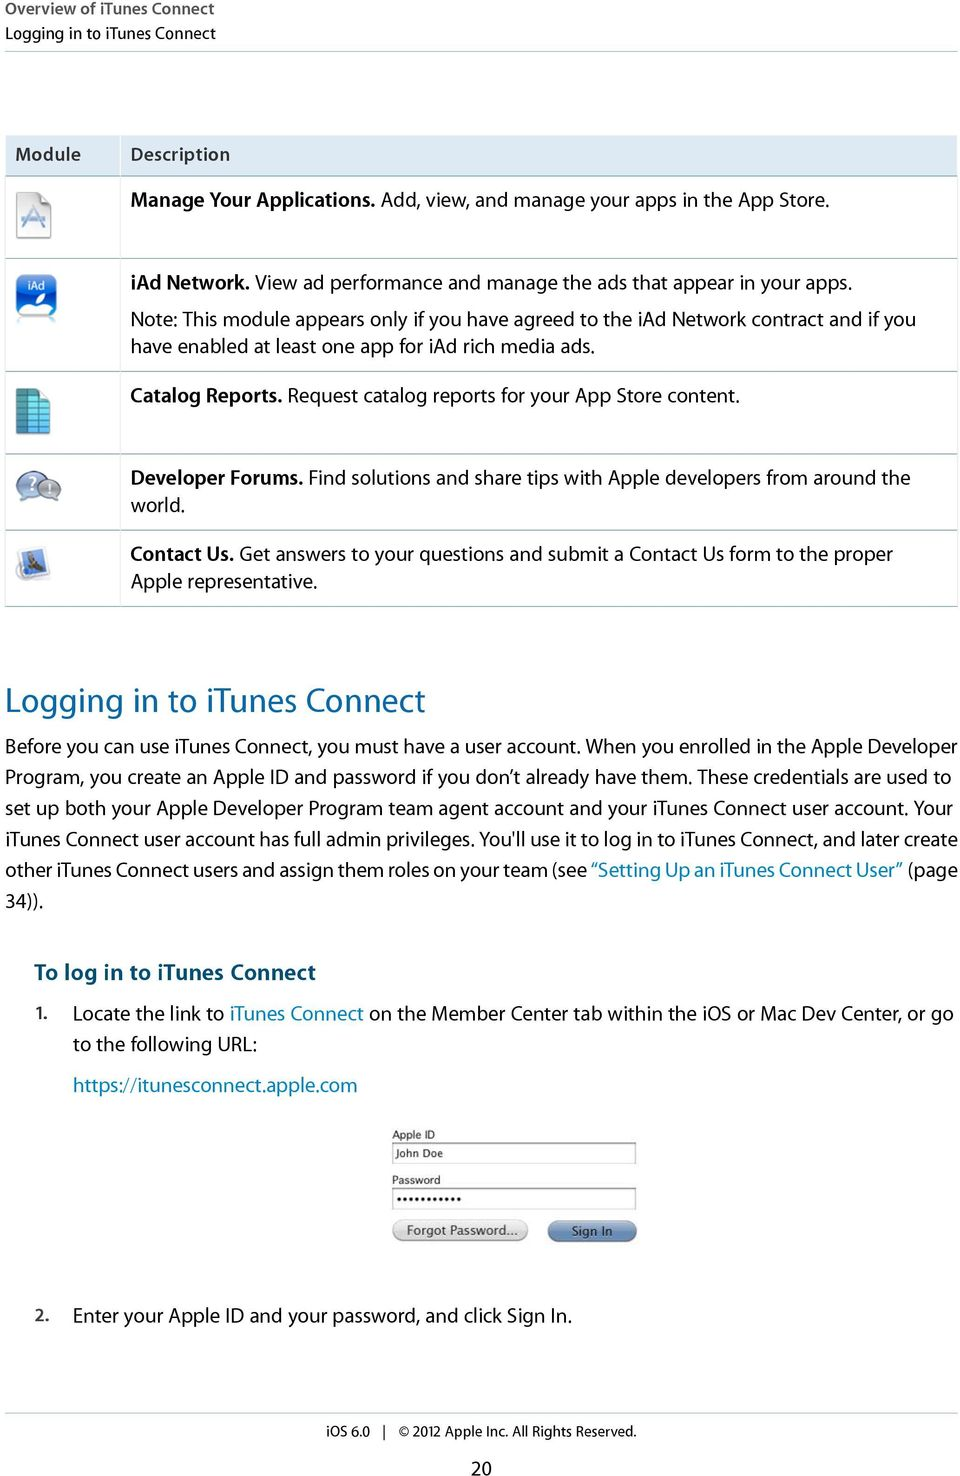 Itunes connect developer guide pdf note this module appears only if you have agreed to the iad network contract and fandeluxe Image collections